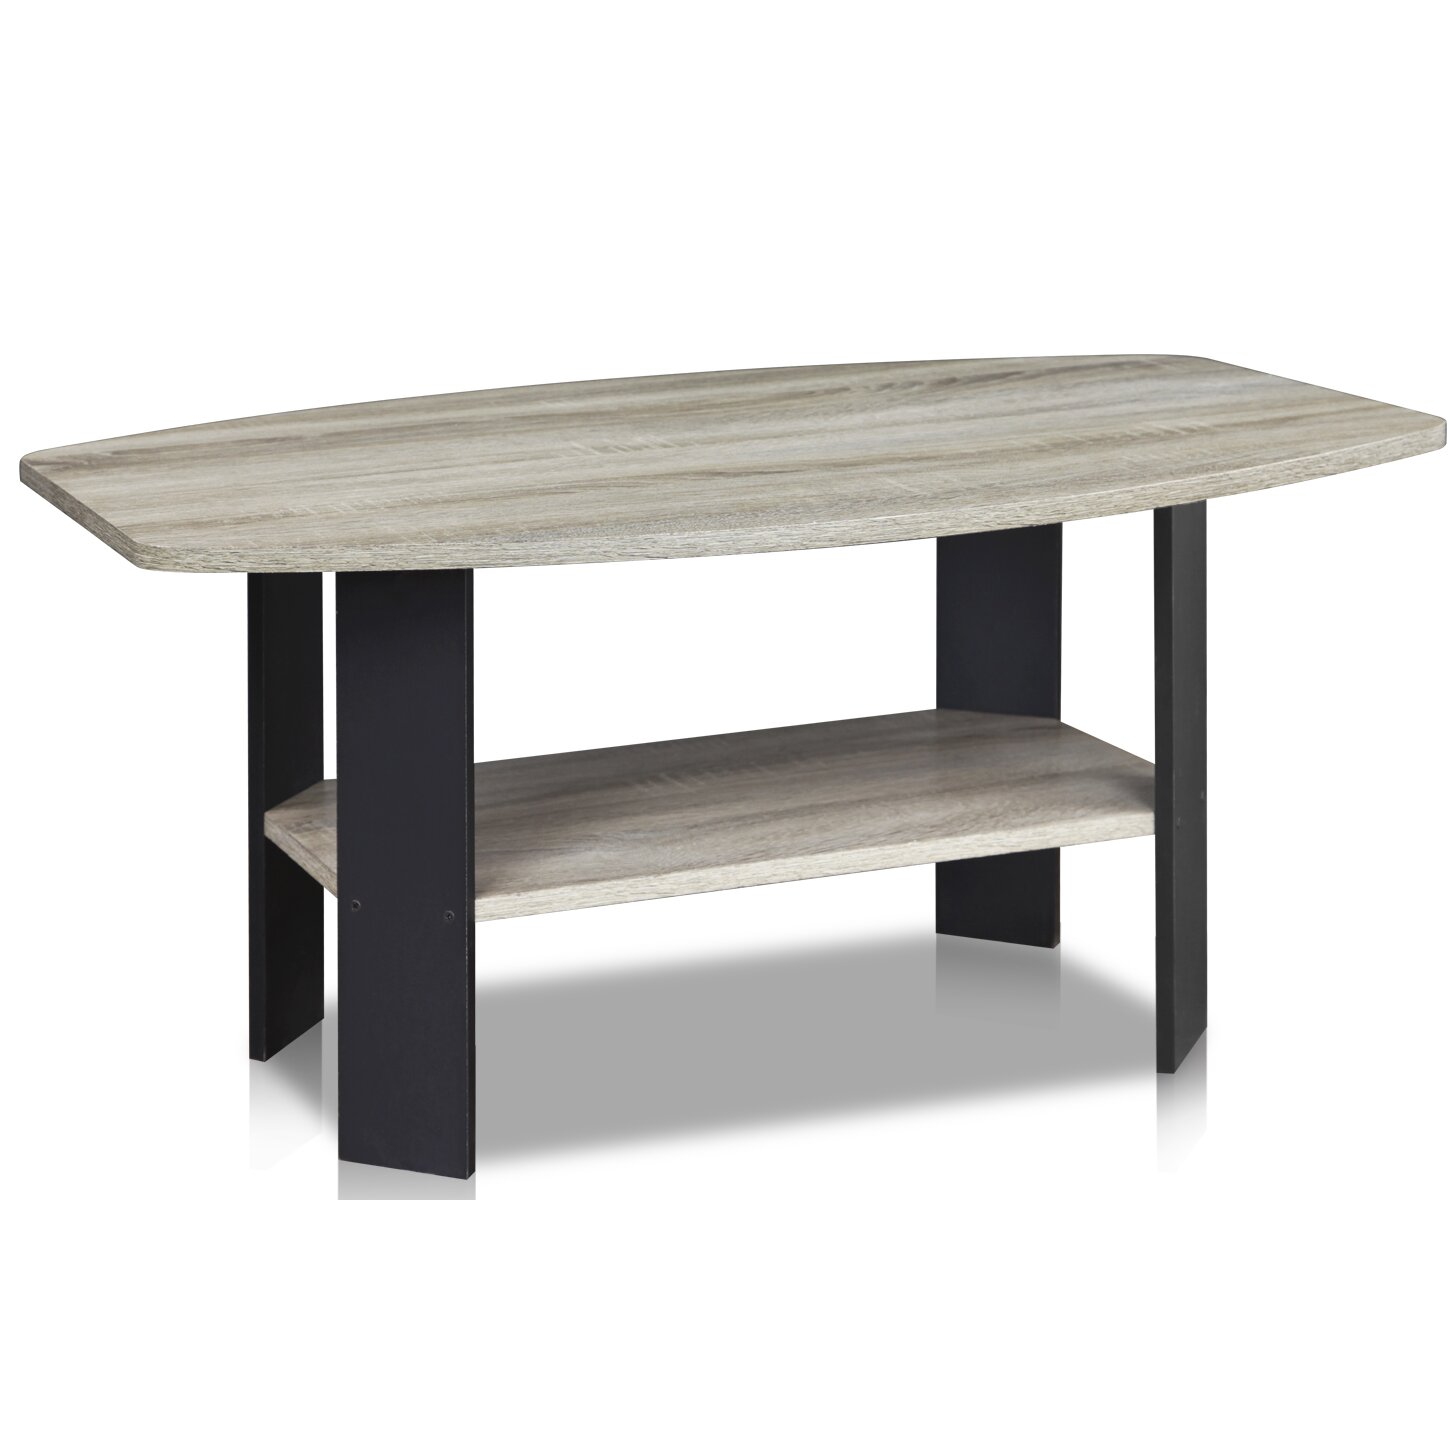 Furinno simple coffee table reviews wayfair for Simple table design html